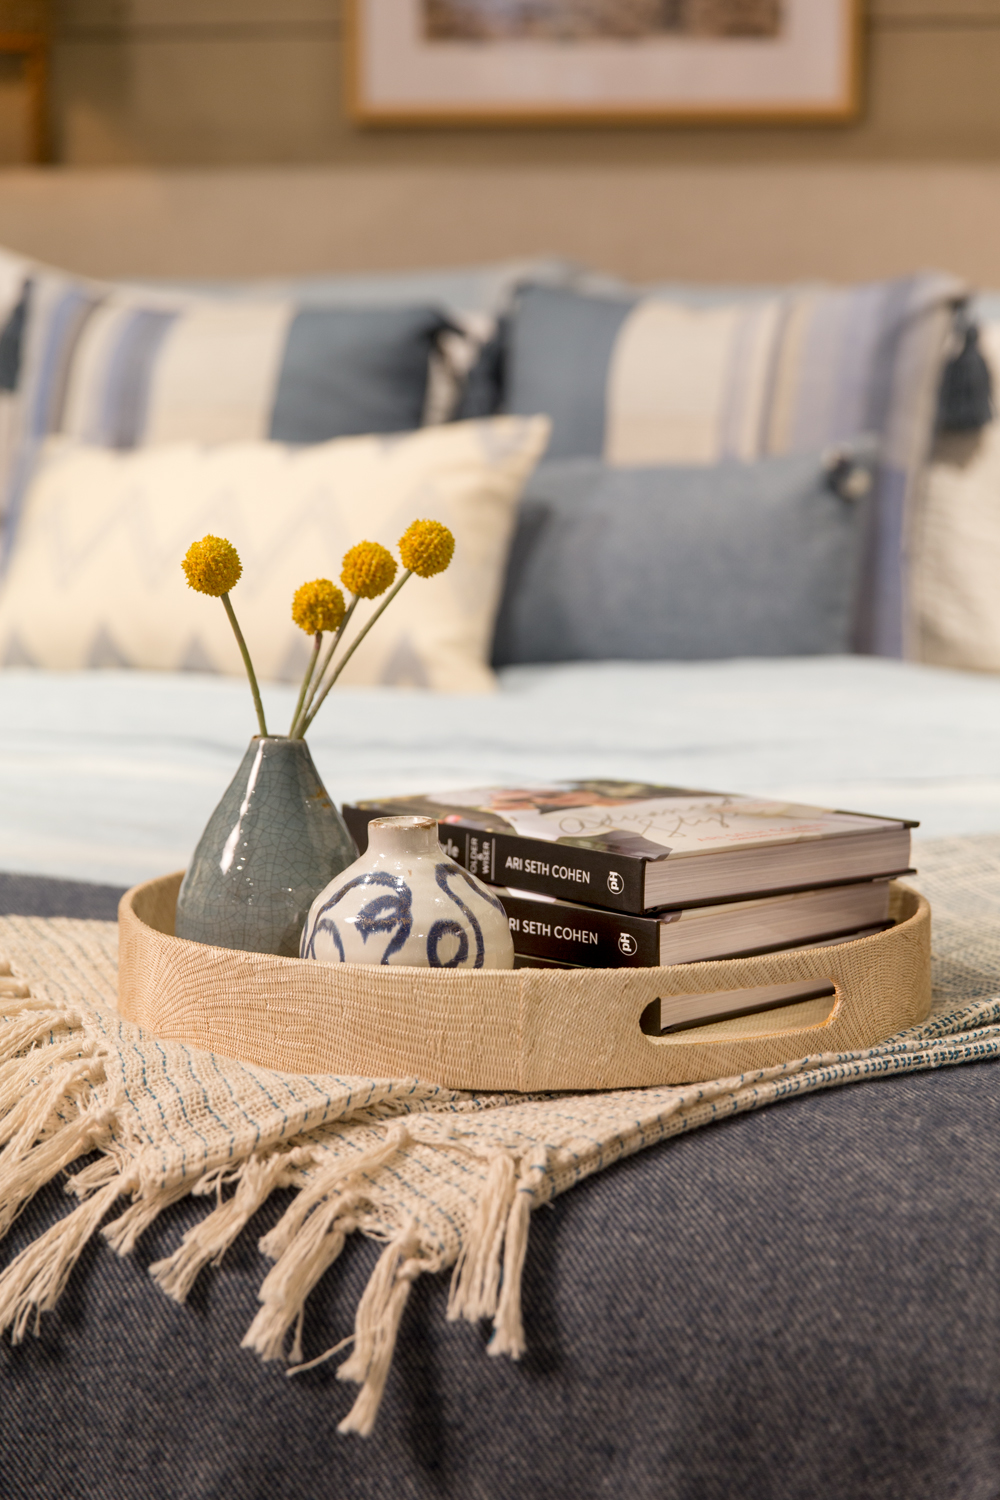 Shop Thoughtfully Curated Accent Pillows, Throws, Coffee Table Books,  Unique Housewarming Gifts, And More.